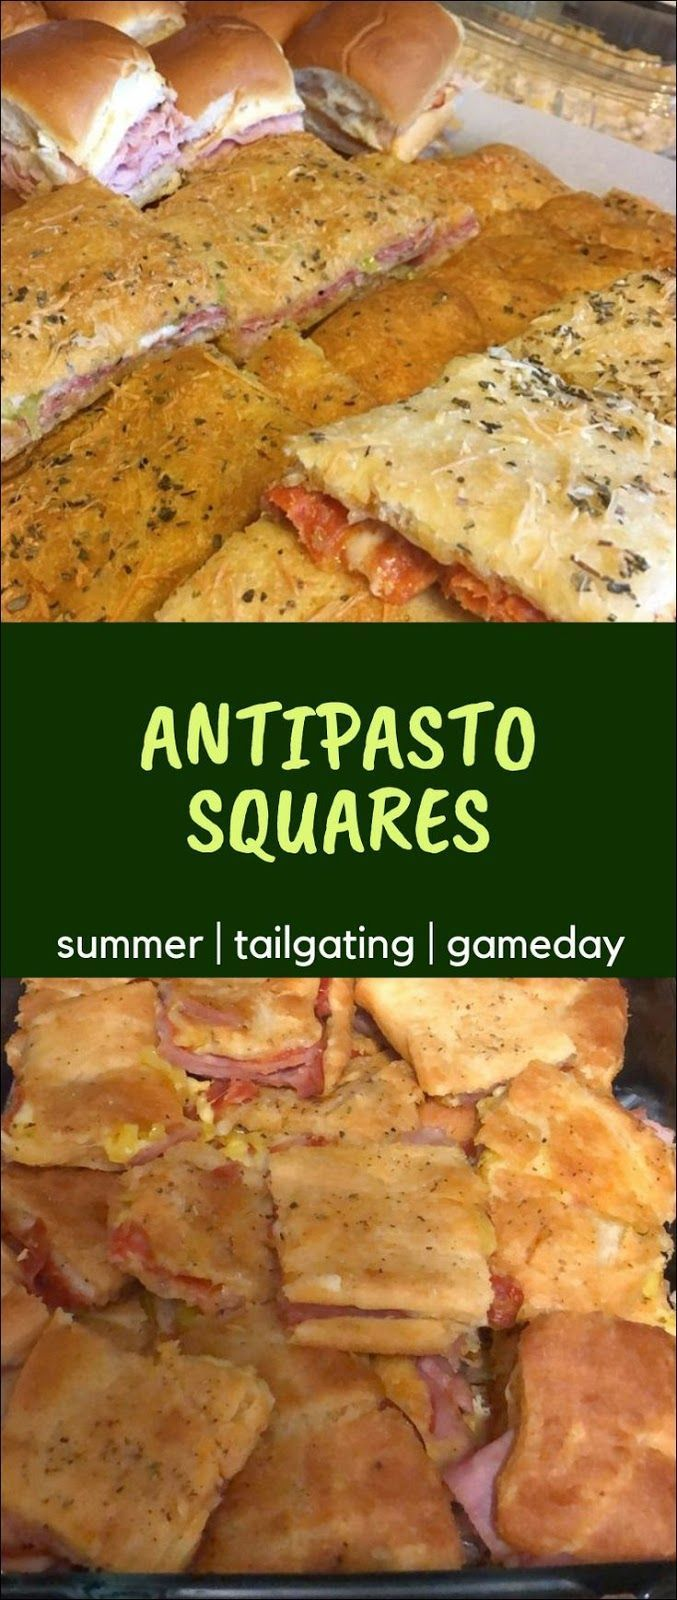 Antipasto Squares #antipastosquares Antipasto Squares #gamedayrecipes #superbbowlrecipes #superbowlrecipe #gamedayeats #superbowl #gameday #footballsunday #tailgating #tailgatingrecipes #tailgatingrecipe #nachos #tailgatingfood #tailgatingmeal #antipastosquares Antipasto Squares #antipastosquares Antipasto Squares #gamedayrecipes #superbbowlrecipes #superbowlrecipe #gamedayeats #superbowl #gameday #footballsunday #tailgating #tailgatingrecipes #tailgatingrecipe #nachos #tailgatingfood #tailgatin #antipastosquares